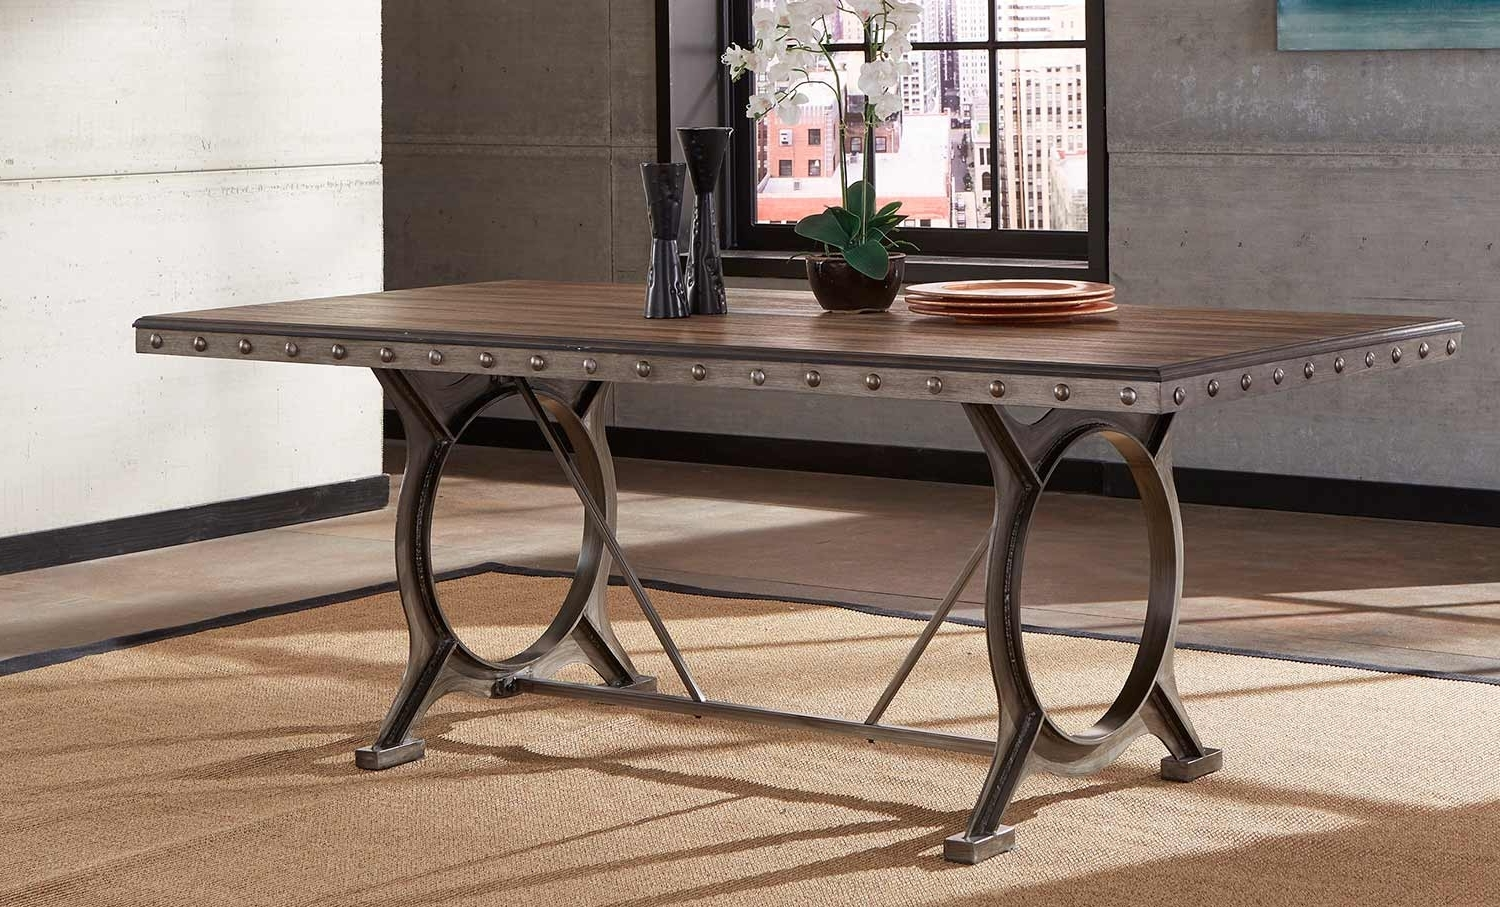 Brushed Metal Dining Tables Intended For Most Current Hillsdale Paddock Rectangle Dining Table – Brushed Steel Metal (Gallery 4 of 25)